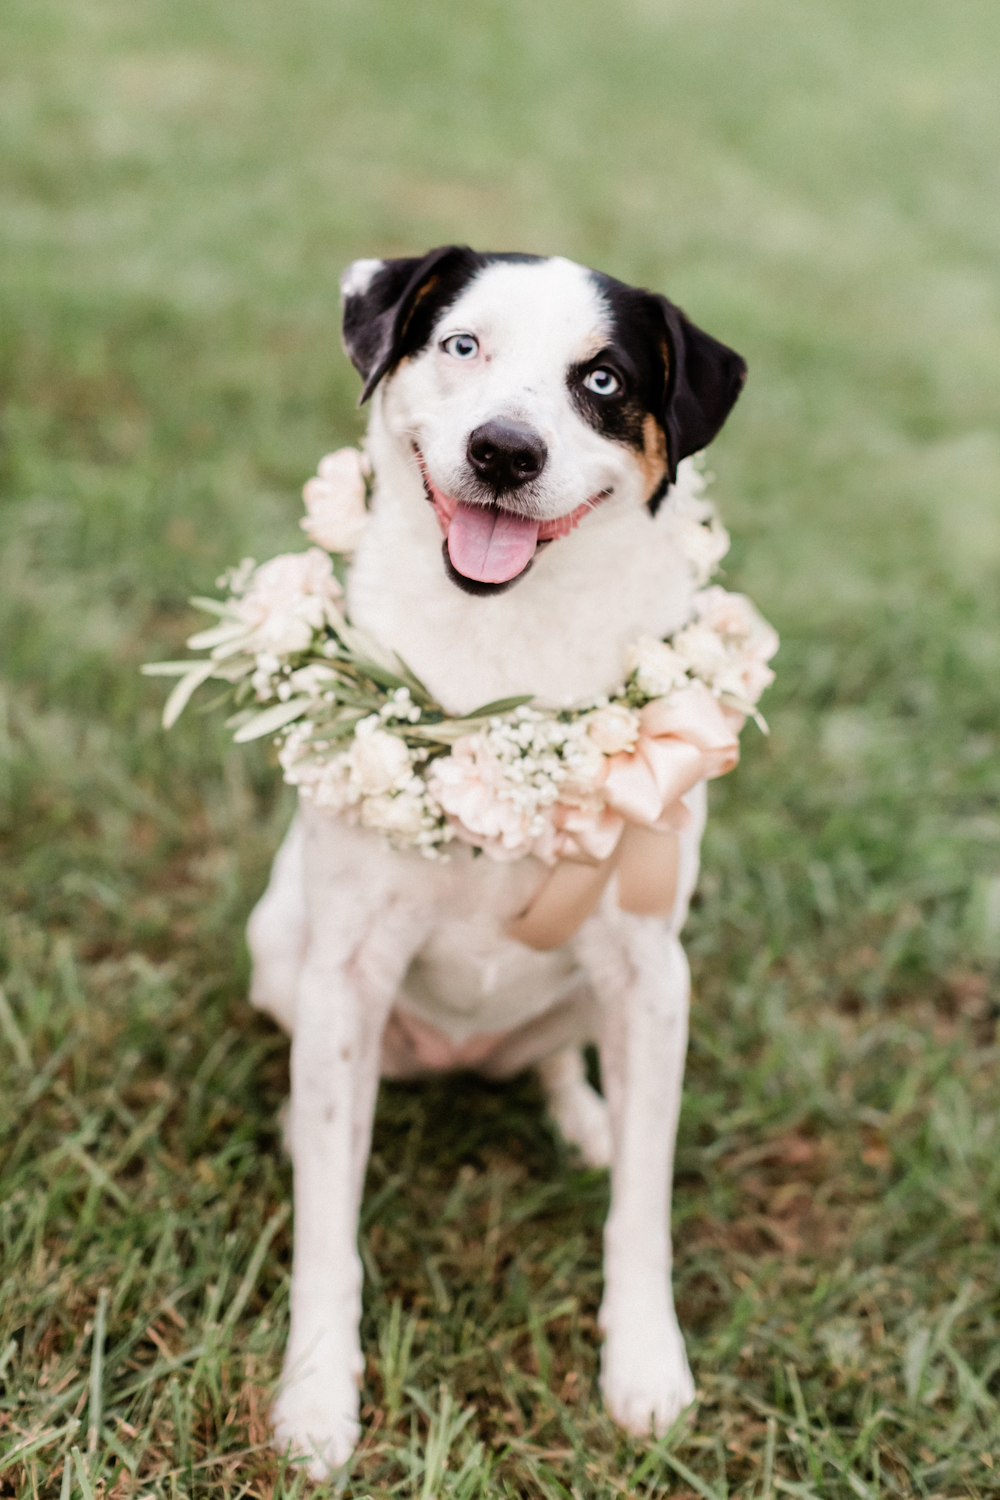 Dog in Wedding Party Picture with Flower Collar